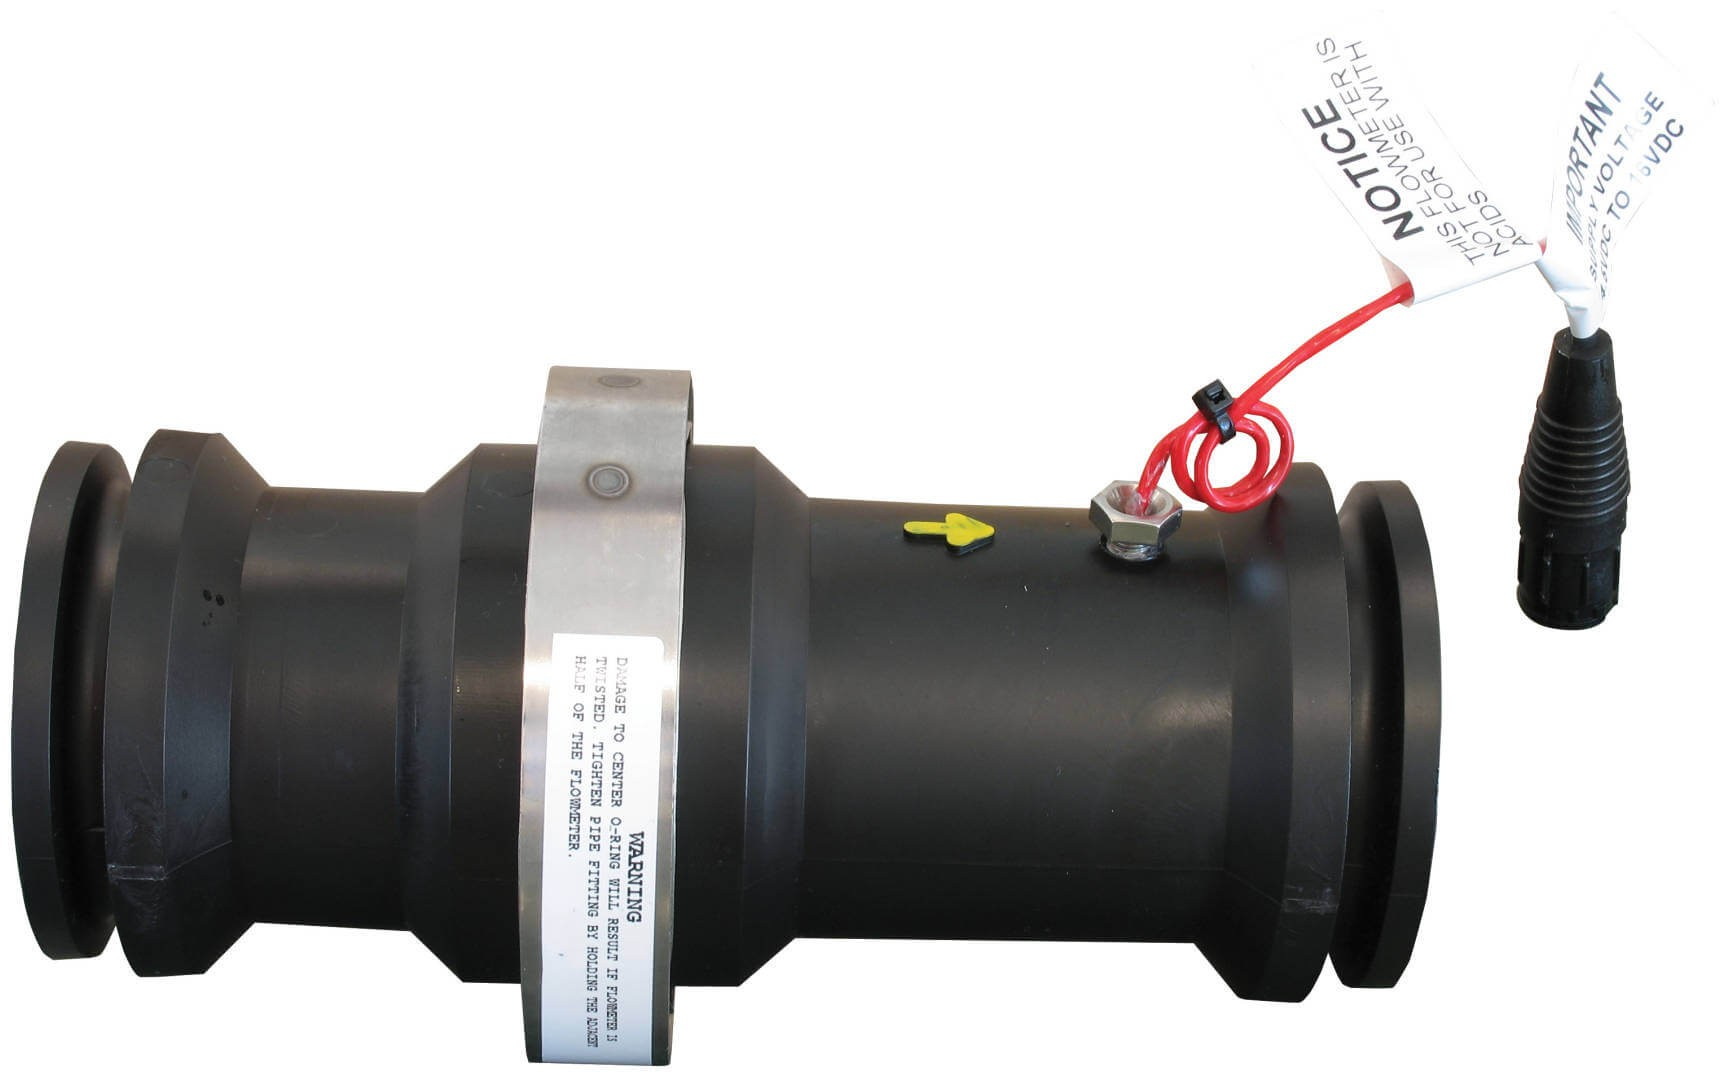 M200 Flanged Poly Flow Meter RFM 100P on